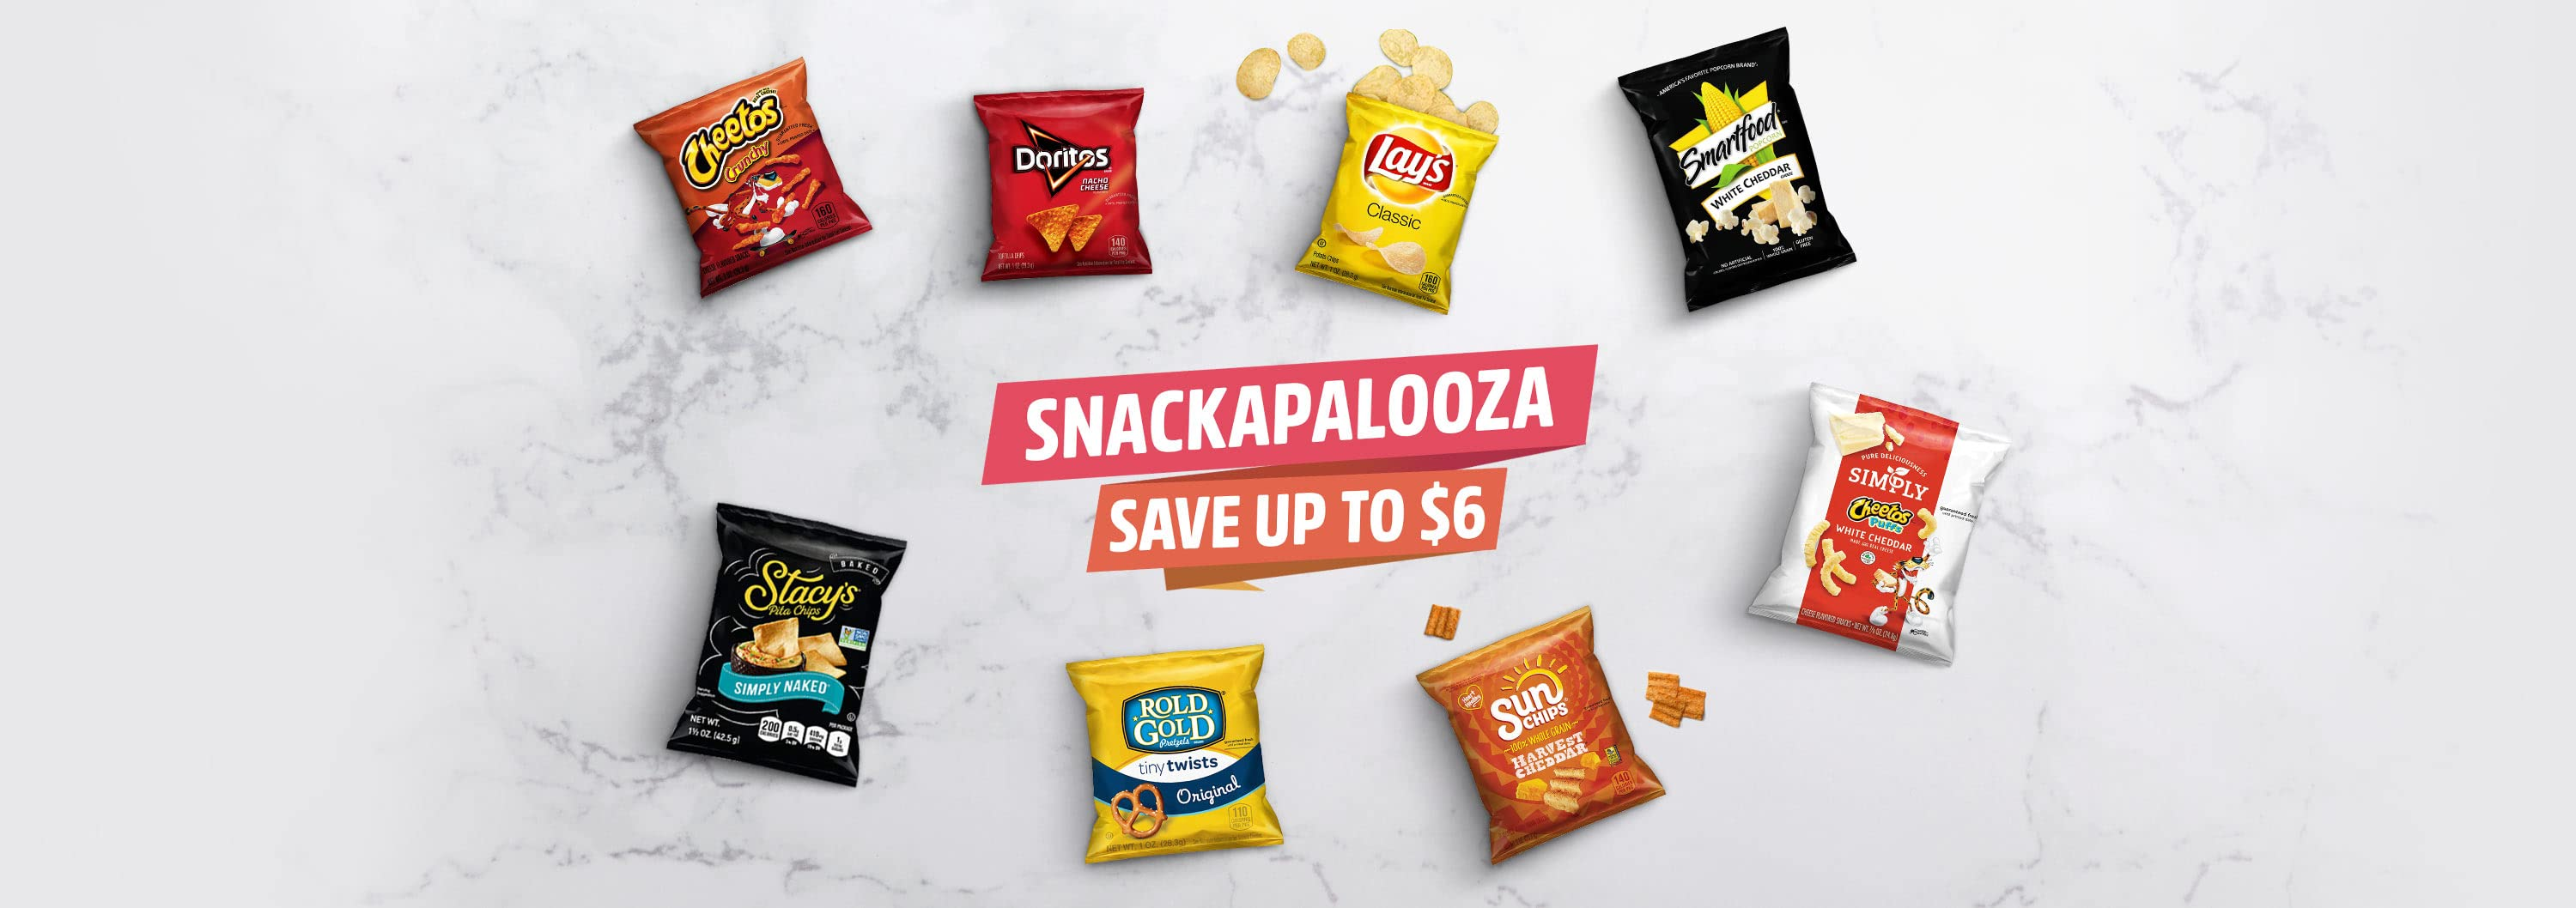 SNACKAPALOOZA. SAVE UP TO $6.